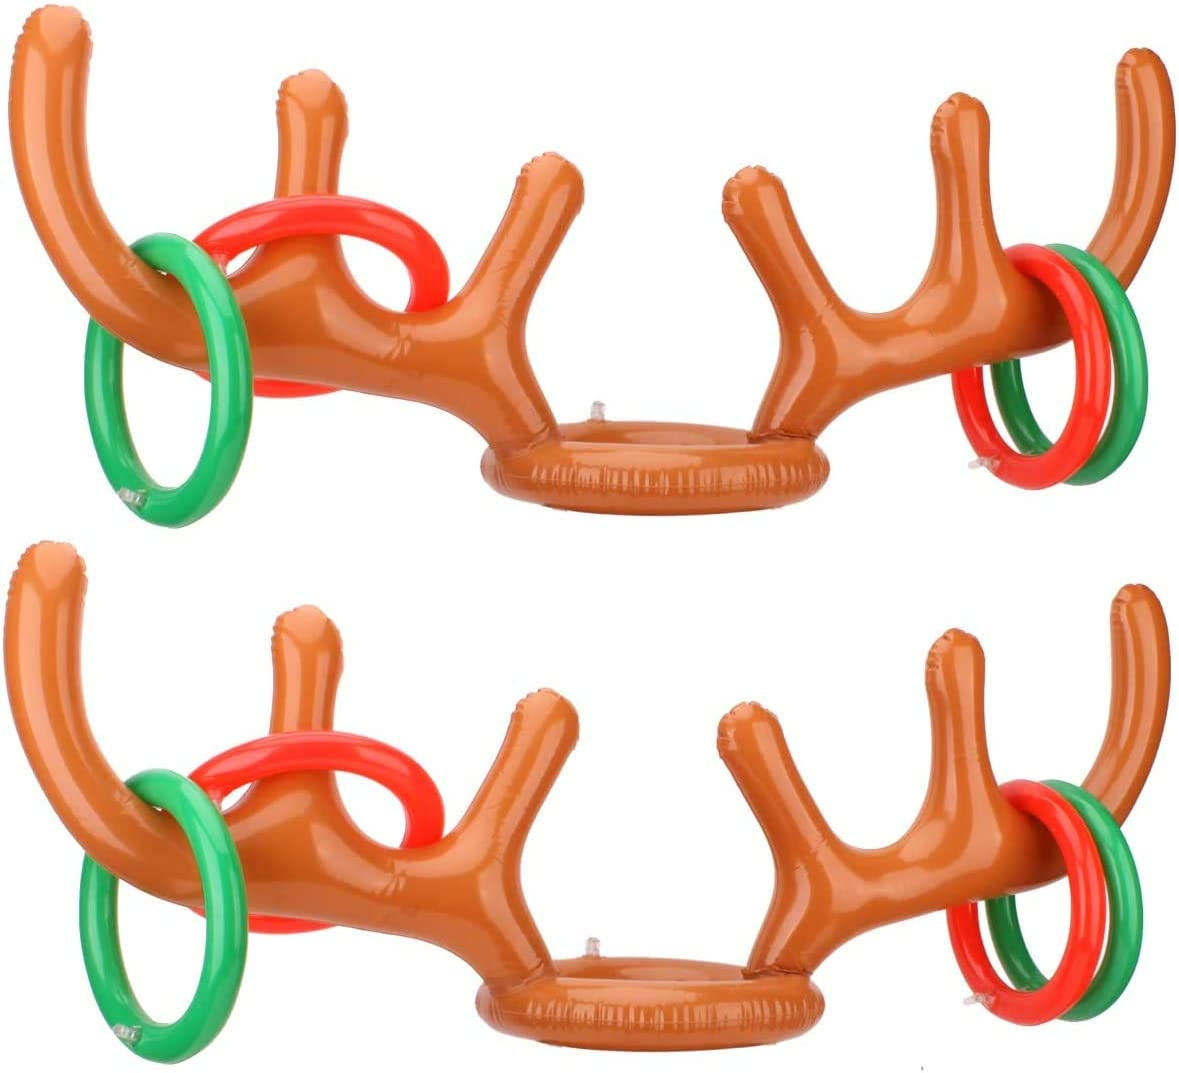 Encci 2-4 Players Clearance SALE Limited time Inflatable Reindeer Toss Game for Antler Special sale item Ring